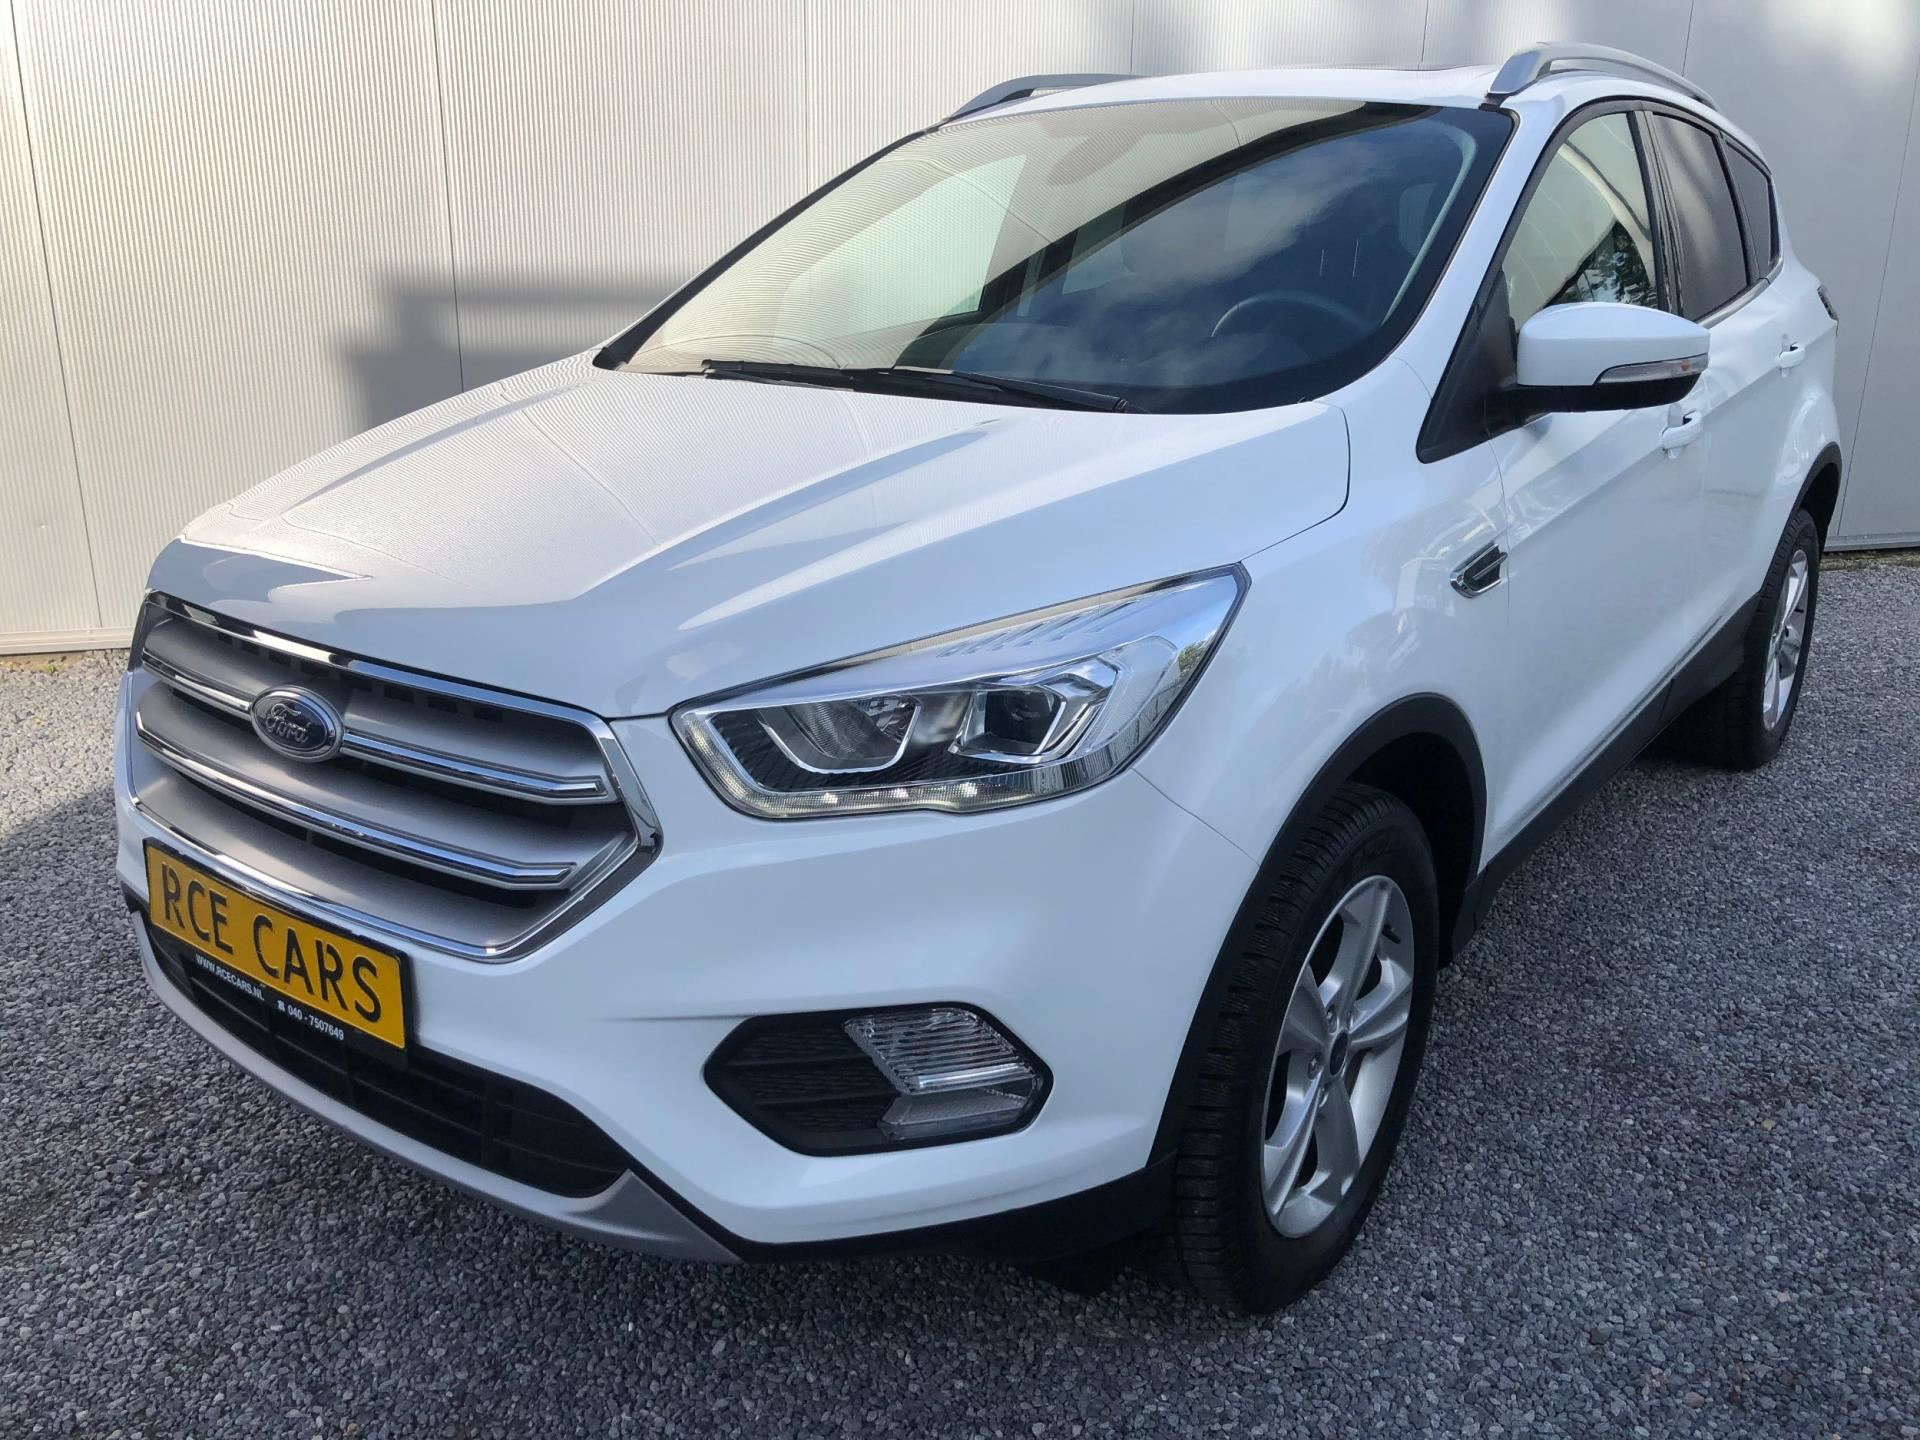 Ford Kuga occasion - RCE Cars